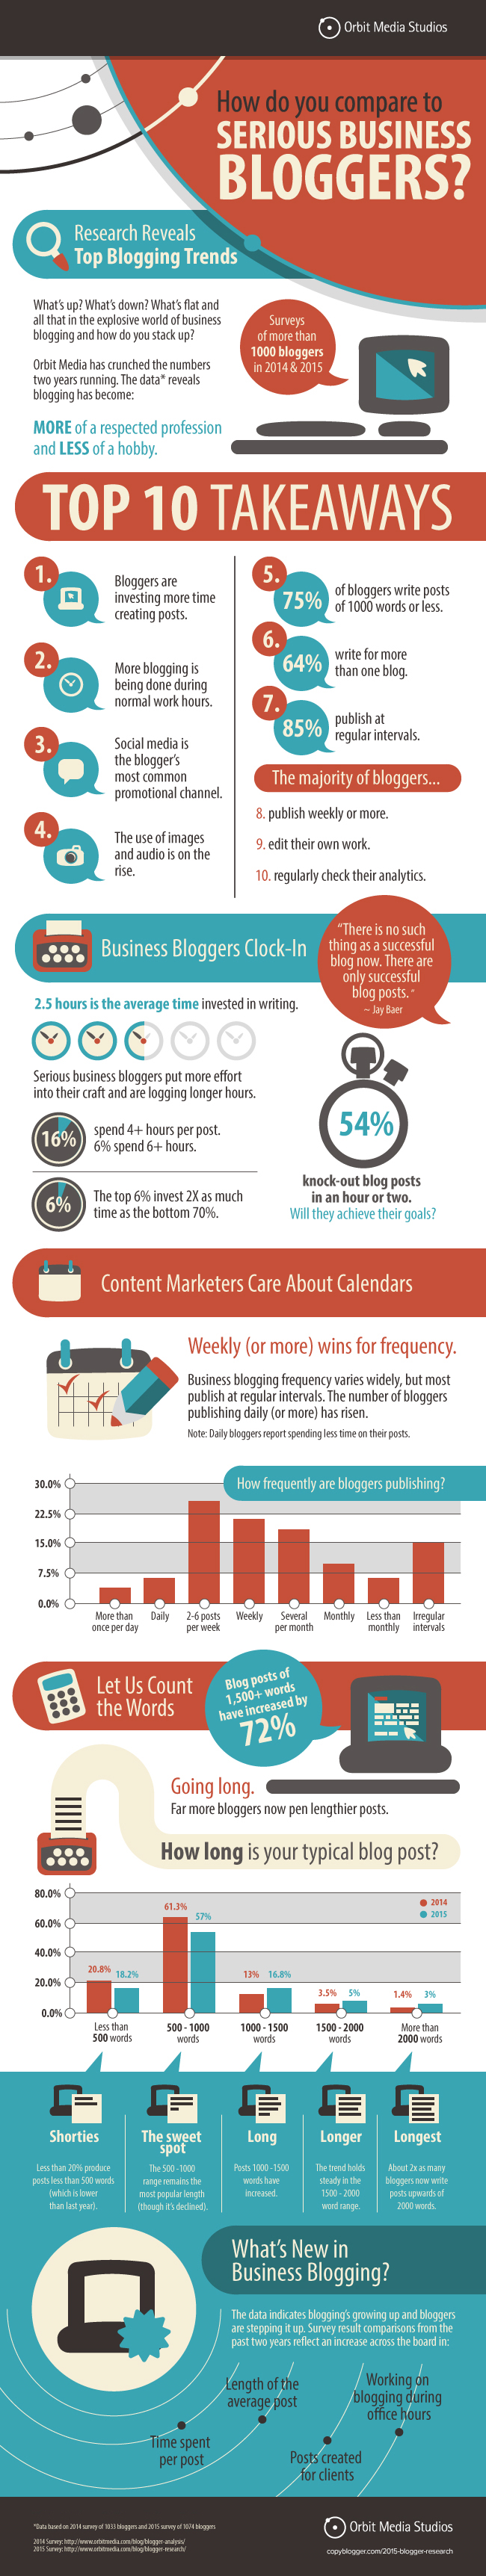 How Do You Compare to Serious Business Bloggers? [Infographic]